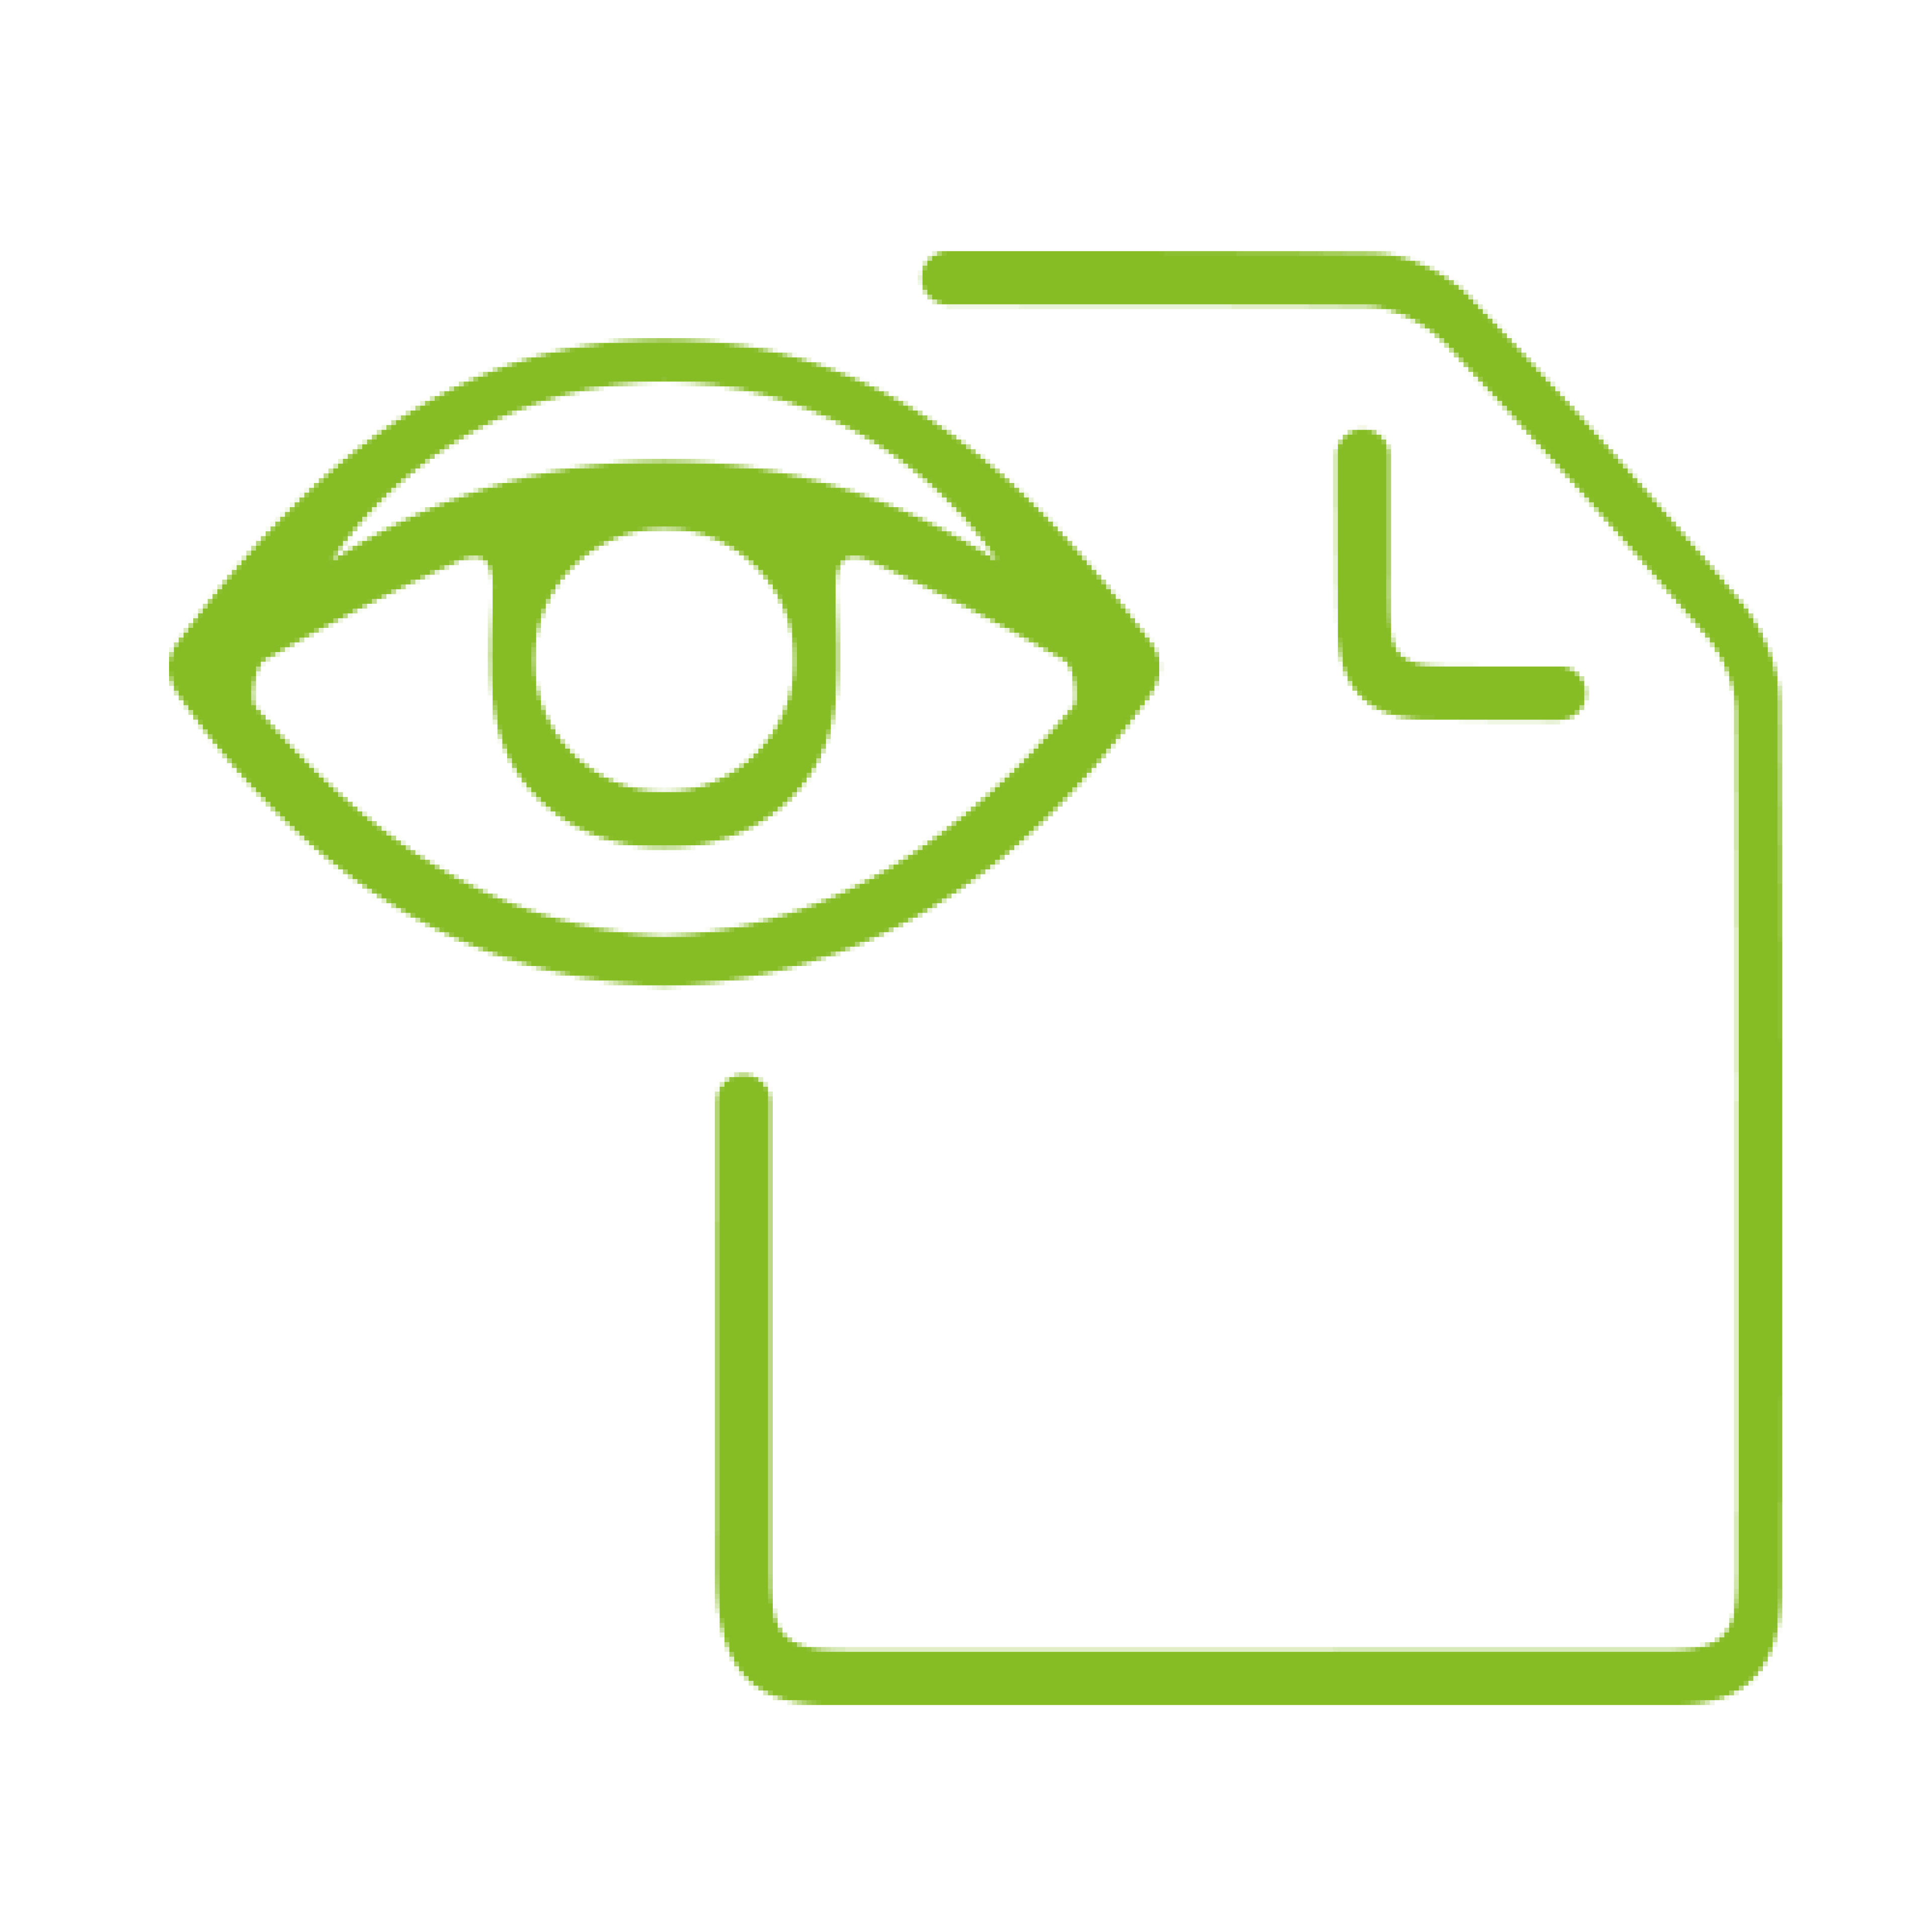 Eye and paper icon